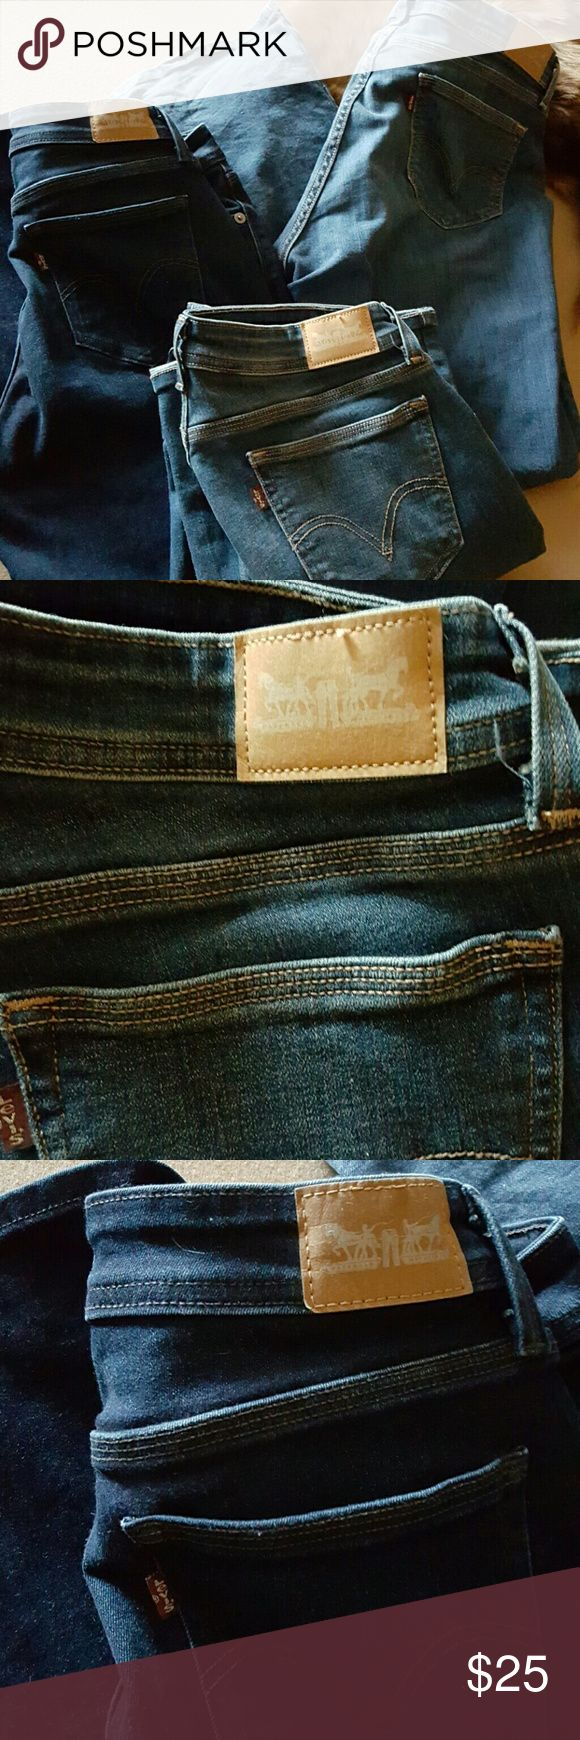 Lot of Levi's womens Curvy Bootcut I have 3 rarely worn. Great condition Levi's curvy Bootcut jeans.1 pair is dark blue. The other 2 are med blue in color. 2 of them are 12 short 1 is 12 med. $25 for all of them. On sale these will run 30 each.great deal Levi's Jeans Boot Cut